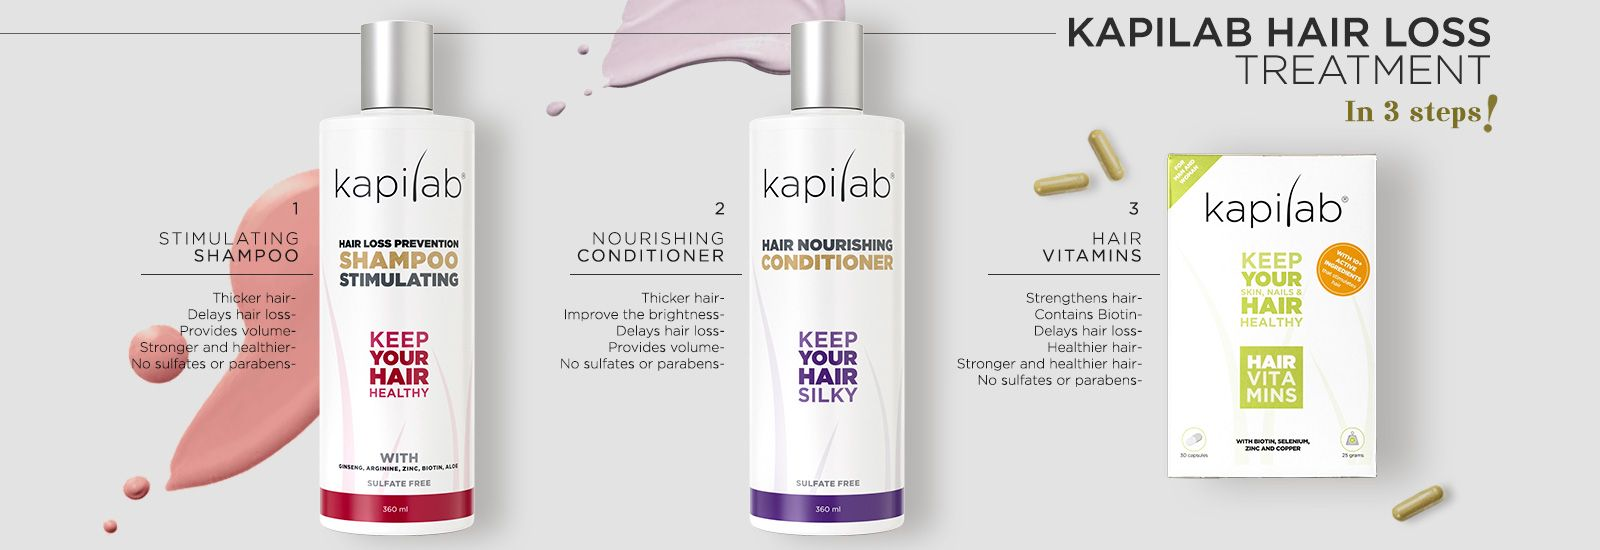 Kapilab Hair Loss Treatments